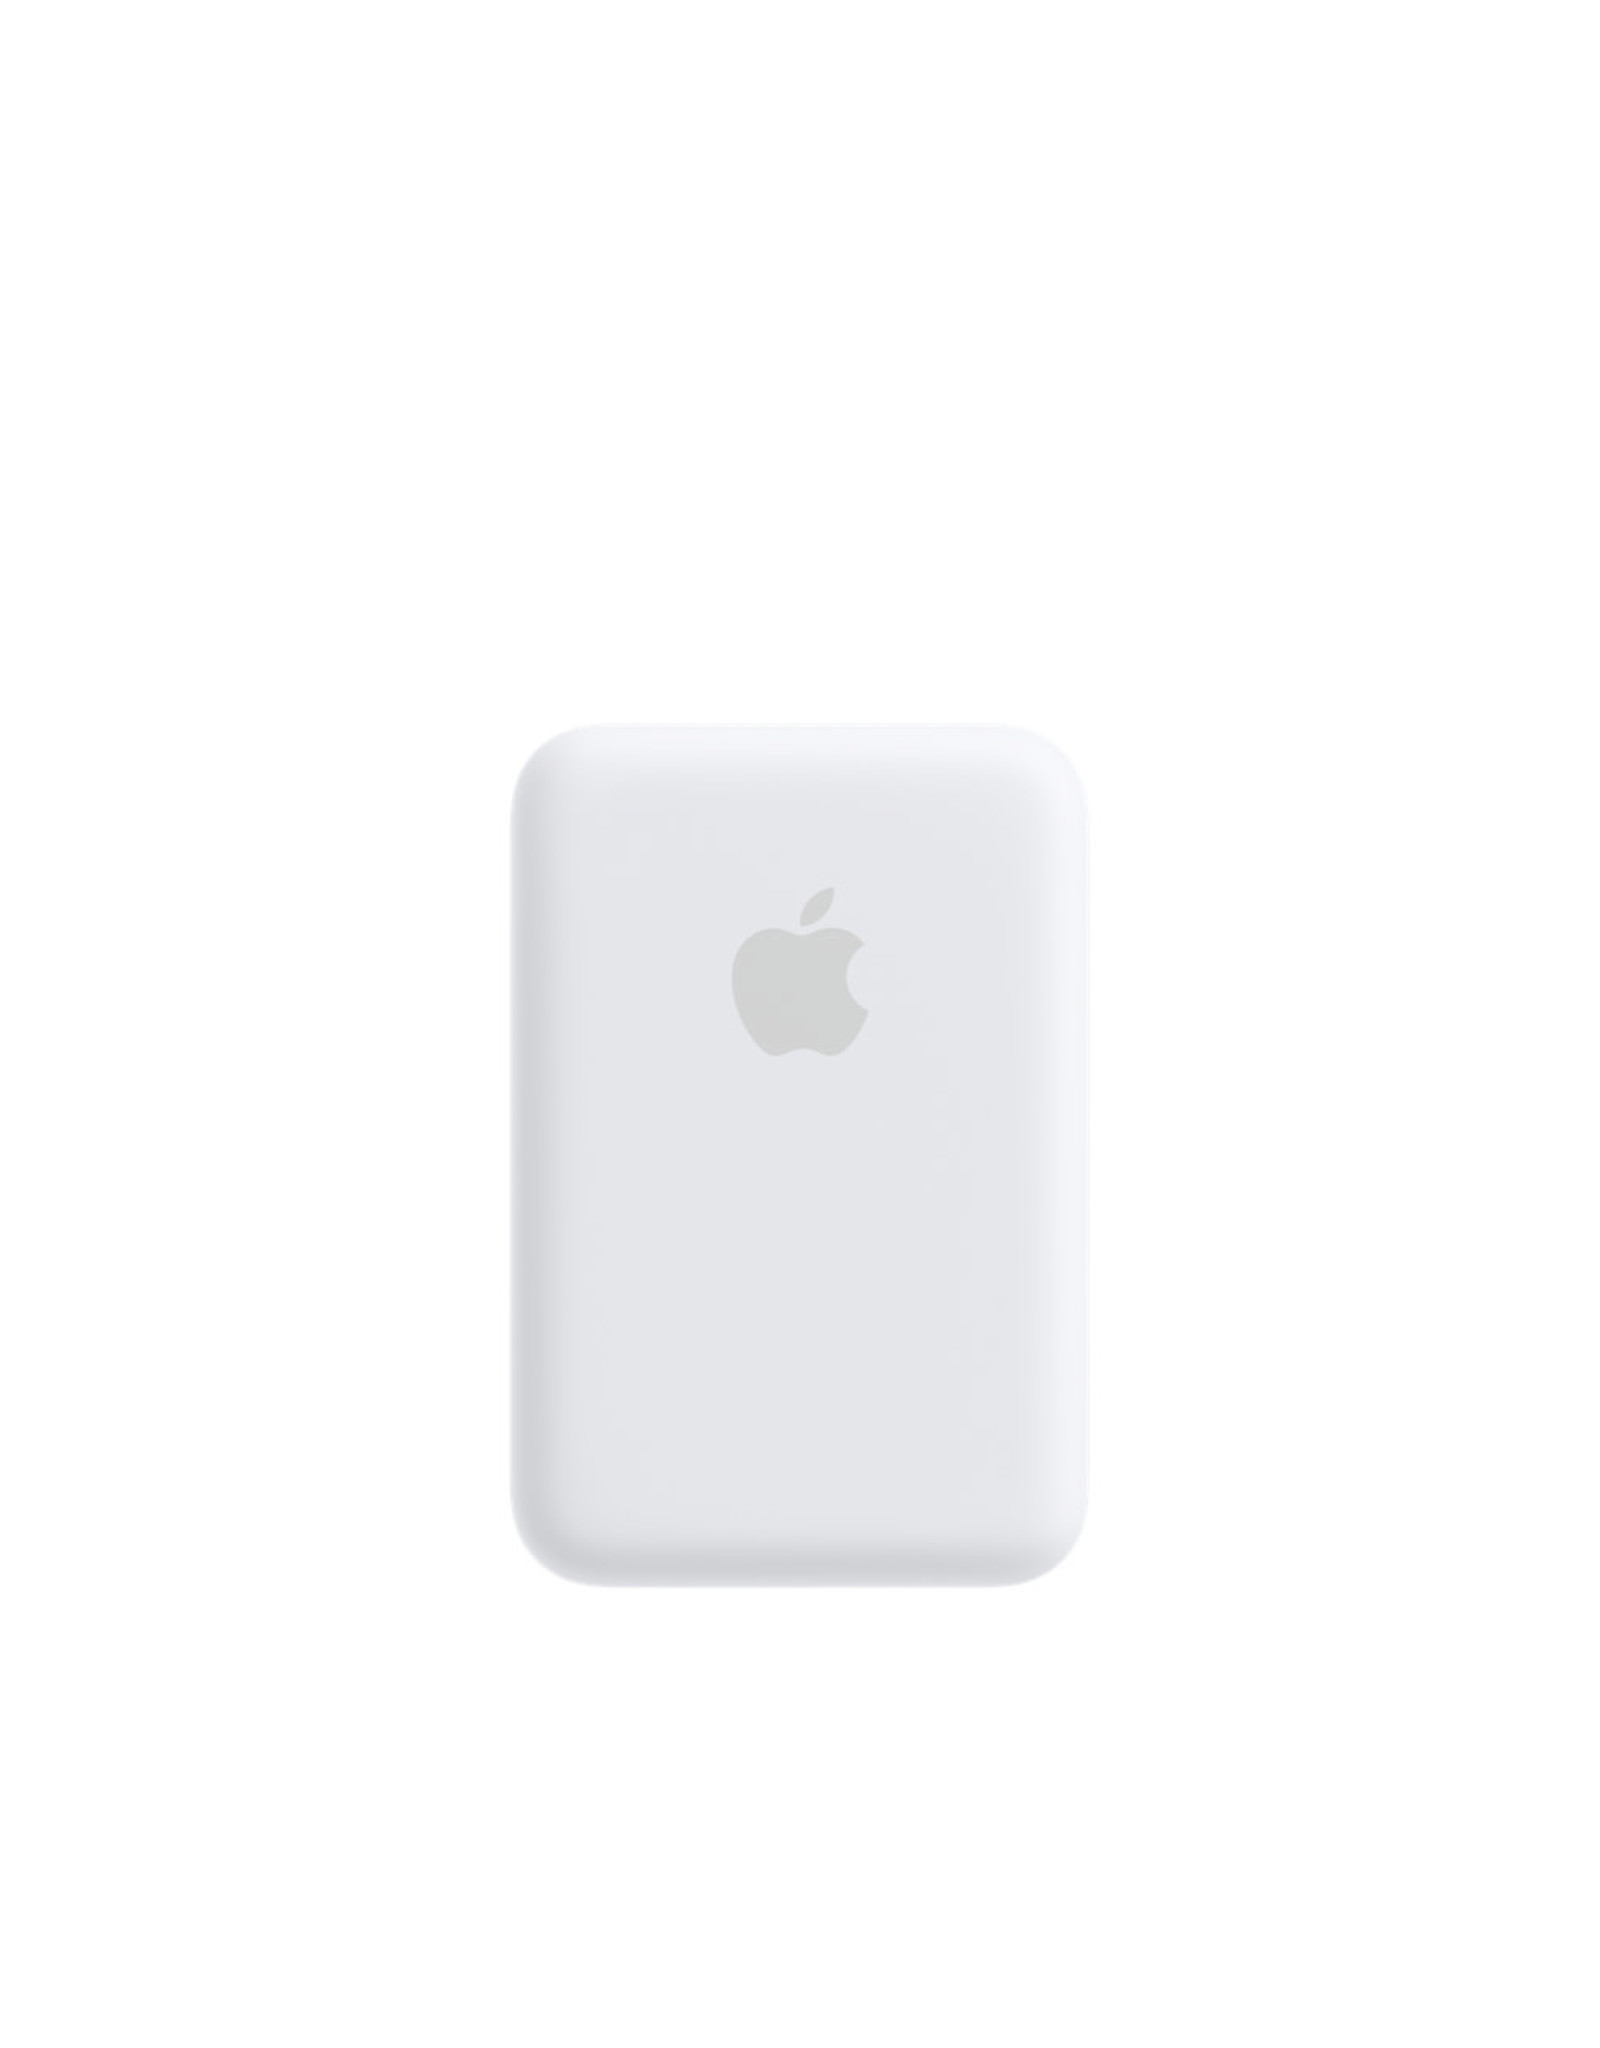 Apple Apple MagSafe Battery Pack